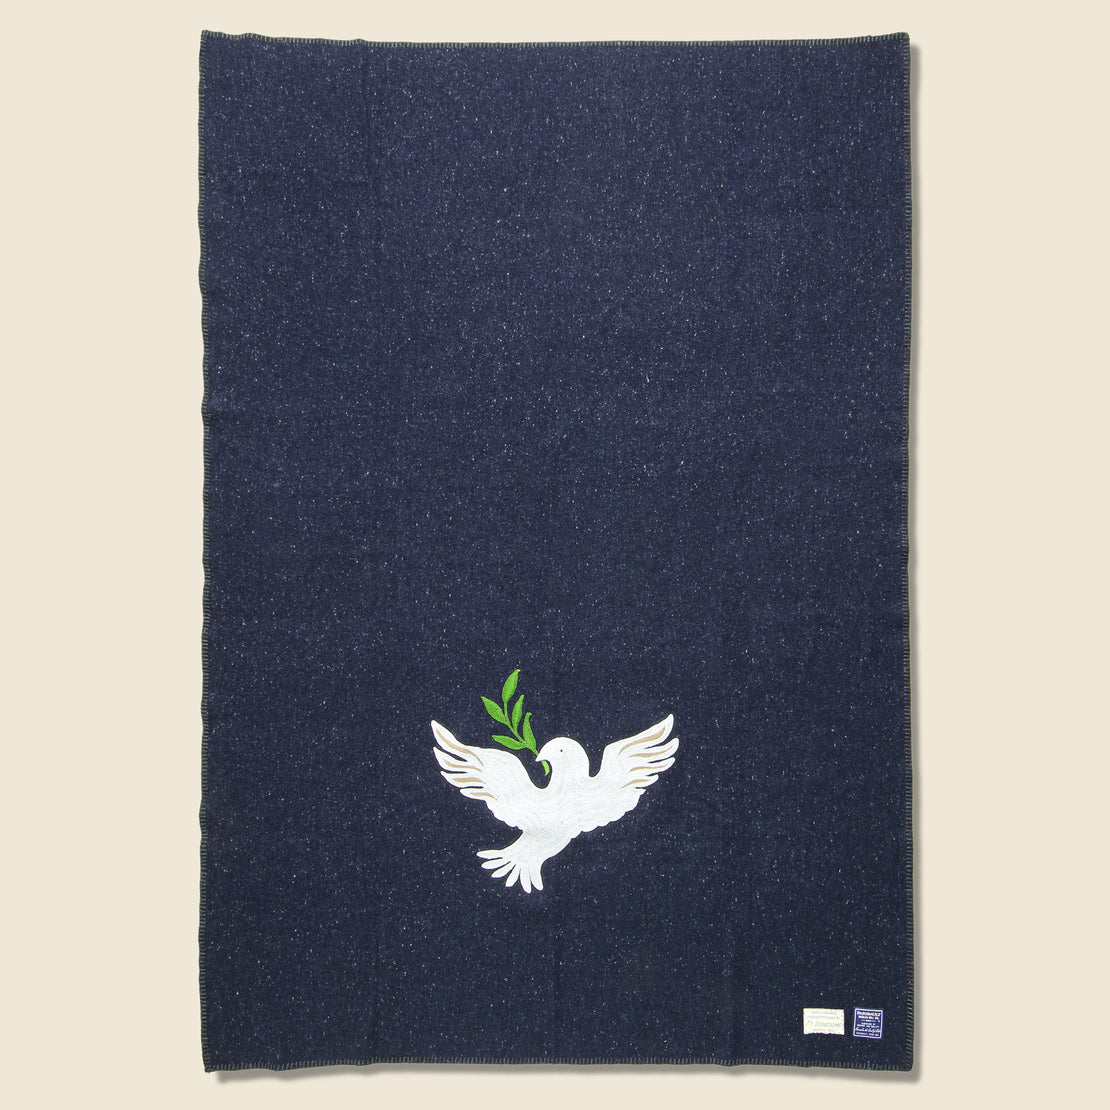 Fort Lonesome Peace Dove Small Utility Blanket - Navy